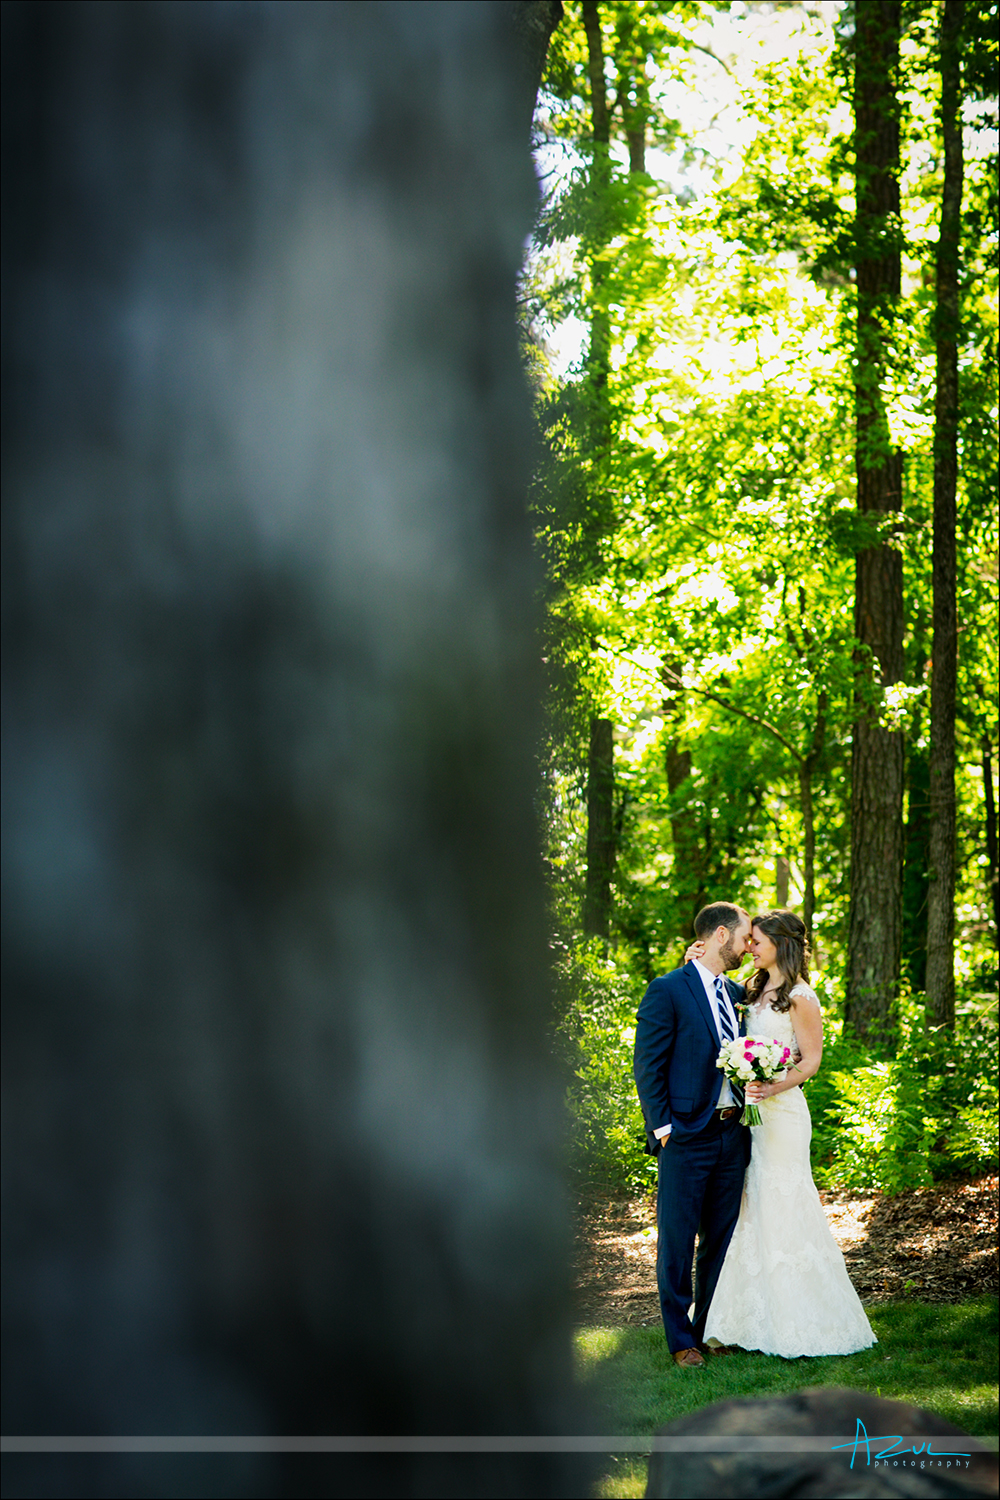 Wedding day portrait photography of Bride and groom after wedding in Chapel Hill, NC